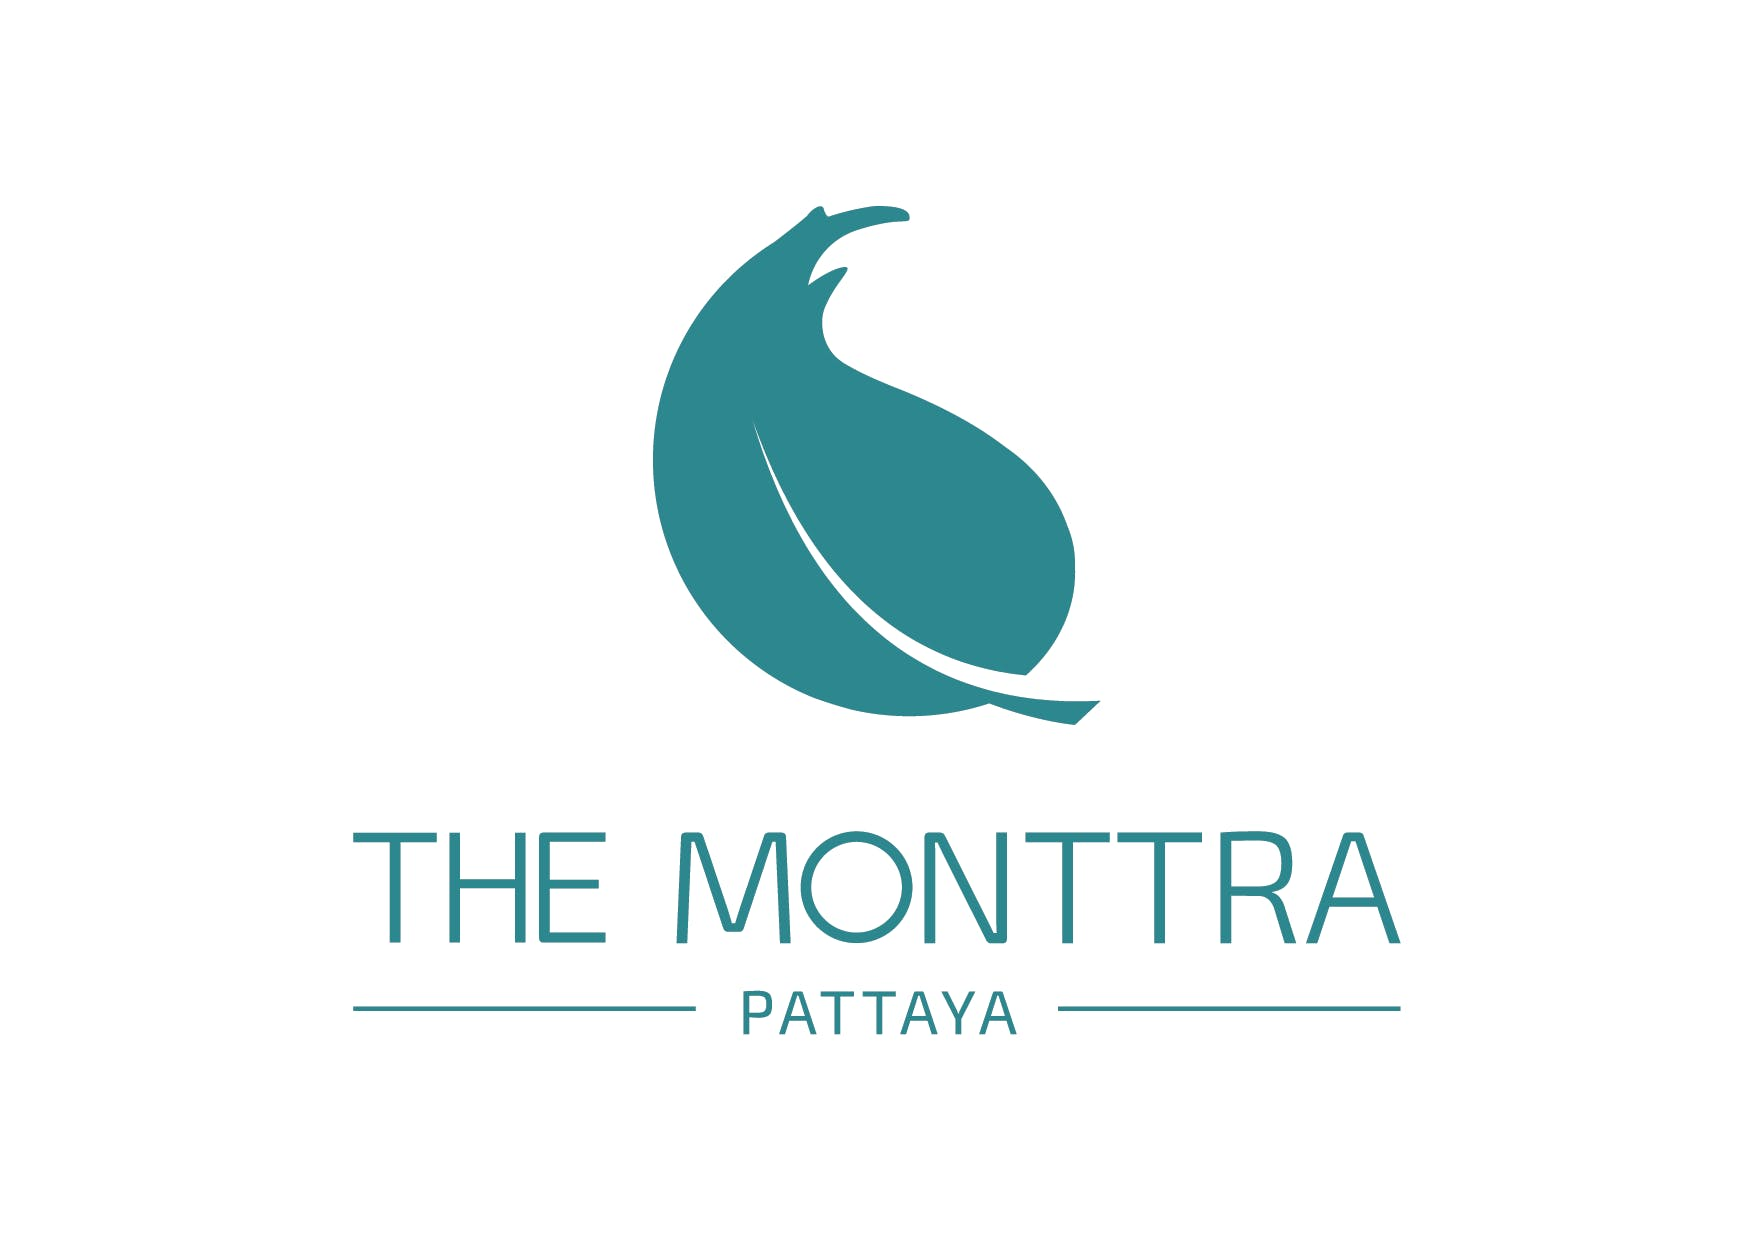 The Monttra Pattaya